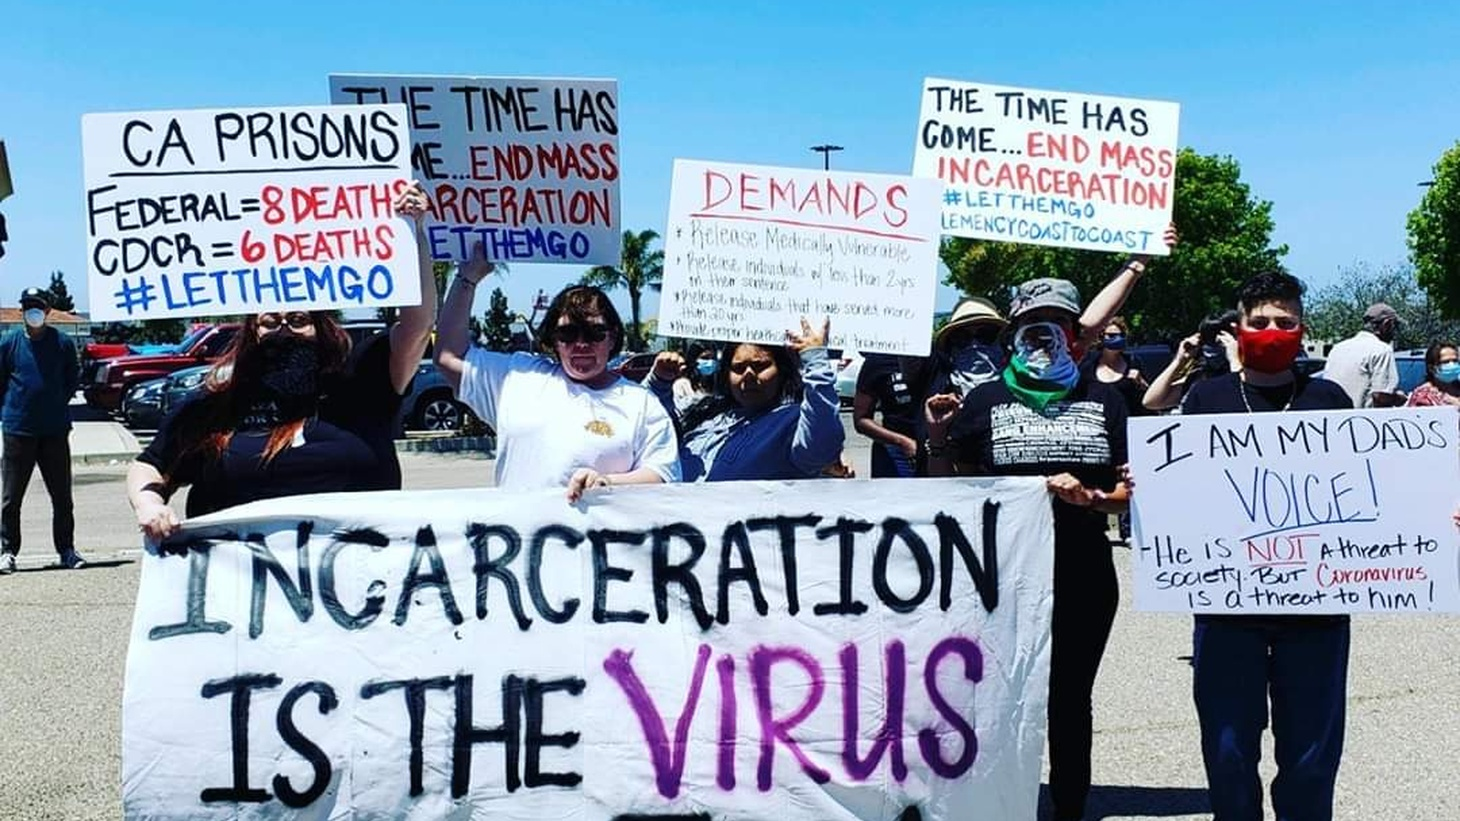 Protesters outside the Lompoc federal prison on May 24.